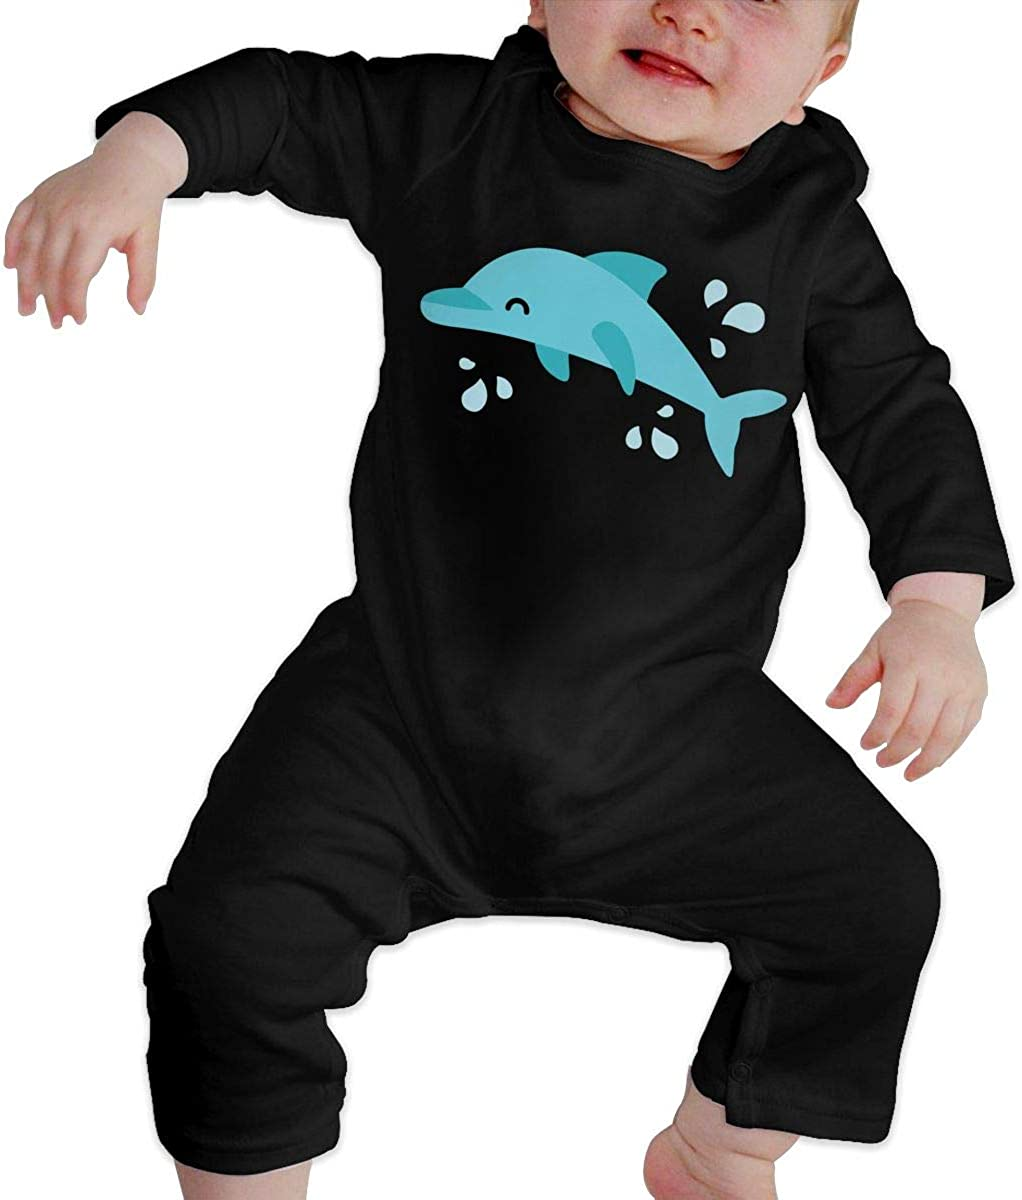 BKNGDG8Q Unisex Baby Romper Jumpsuit Porpoise Organic One-Piece Bodysuits Coverall Outfits